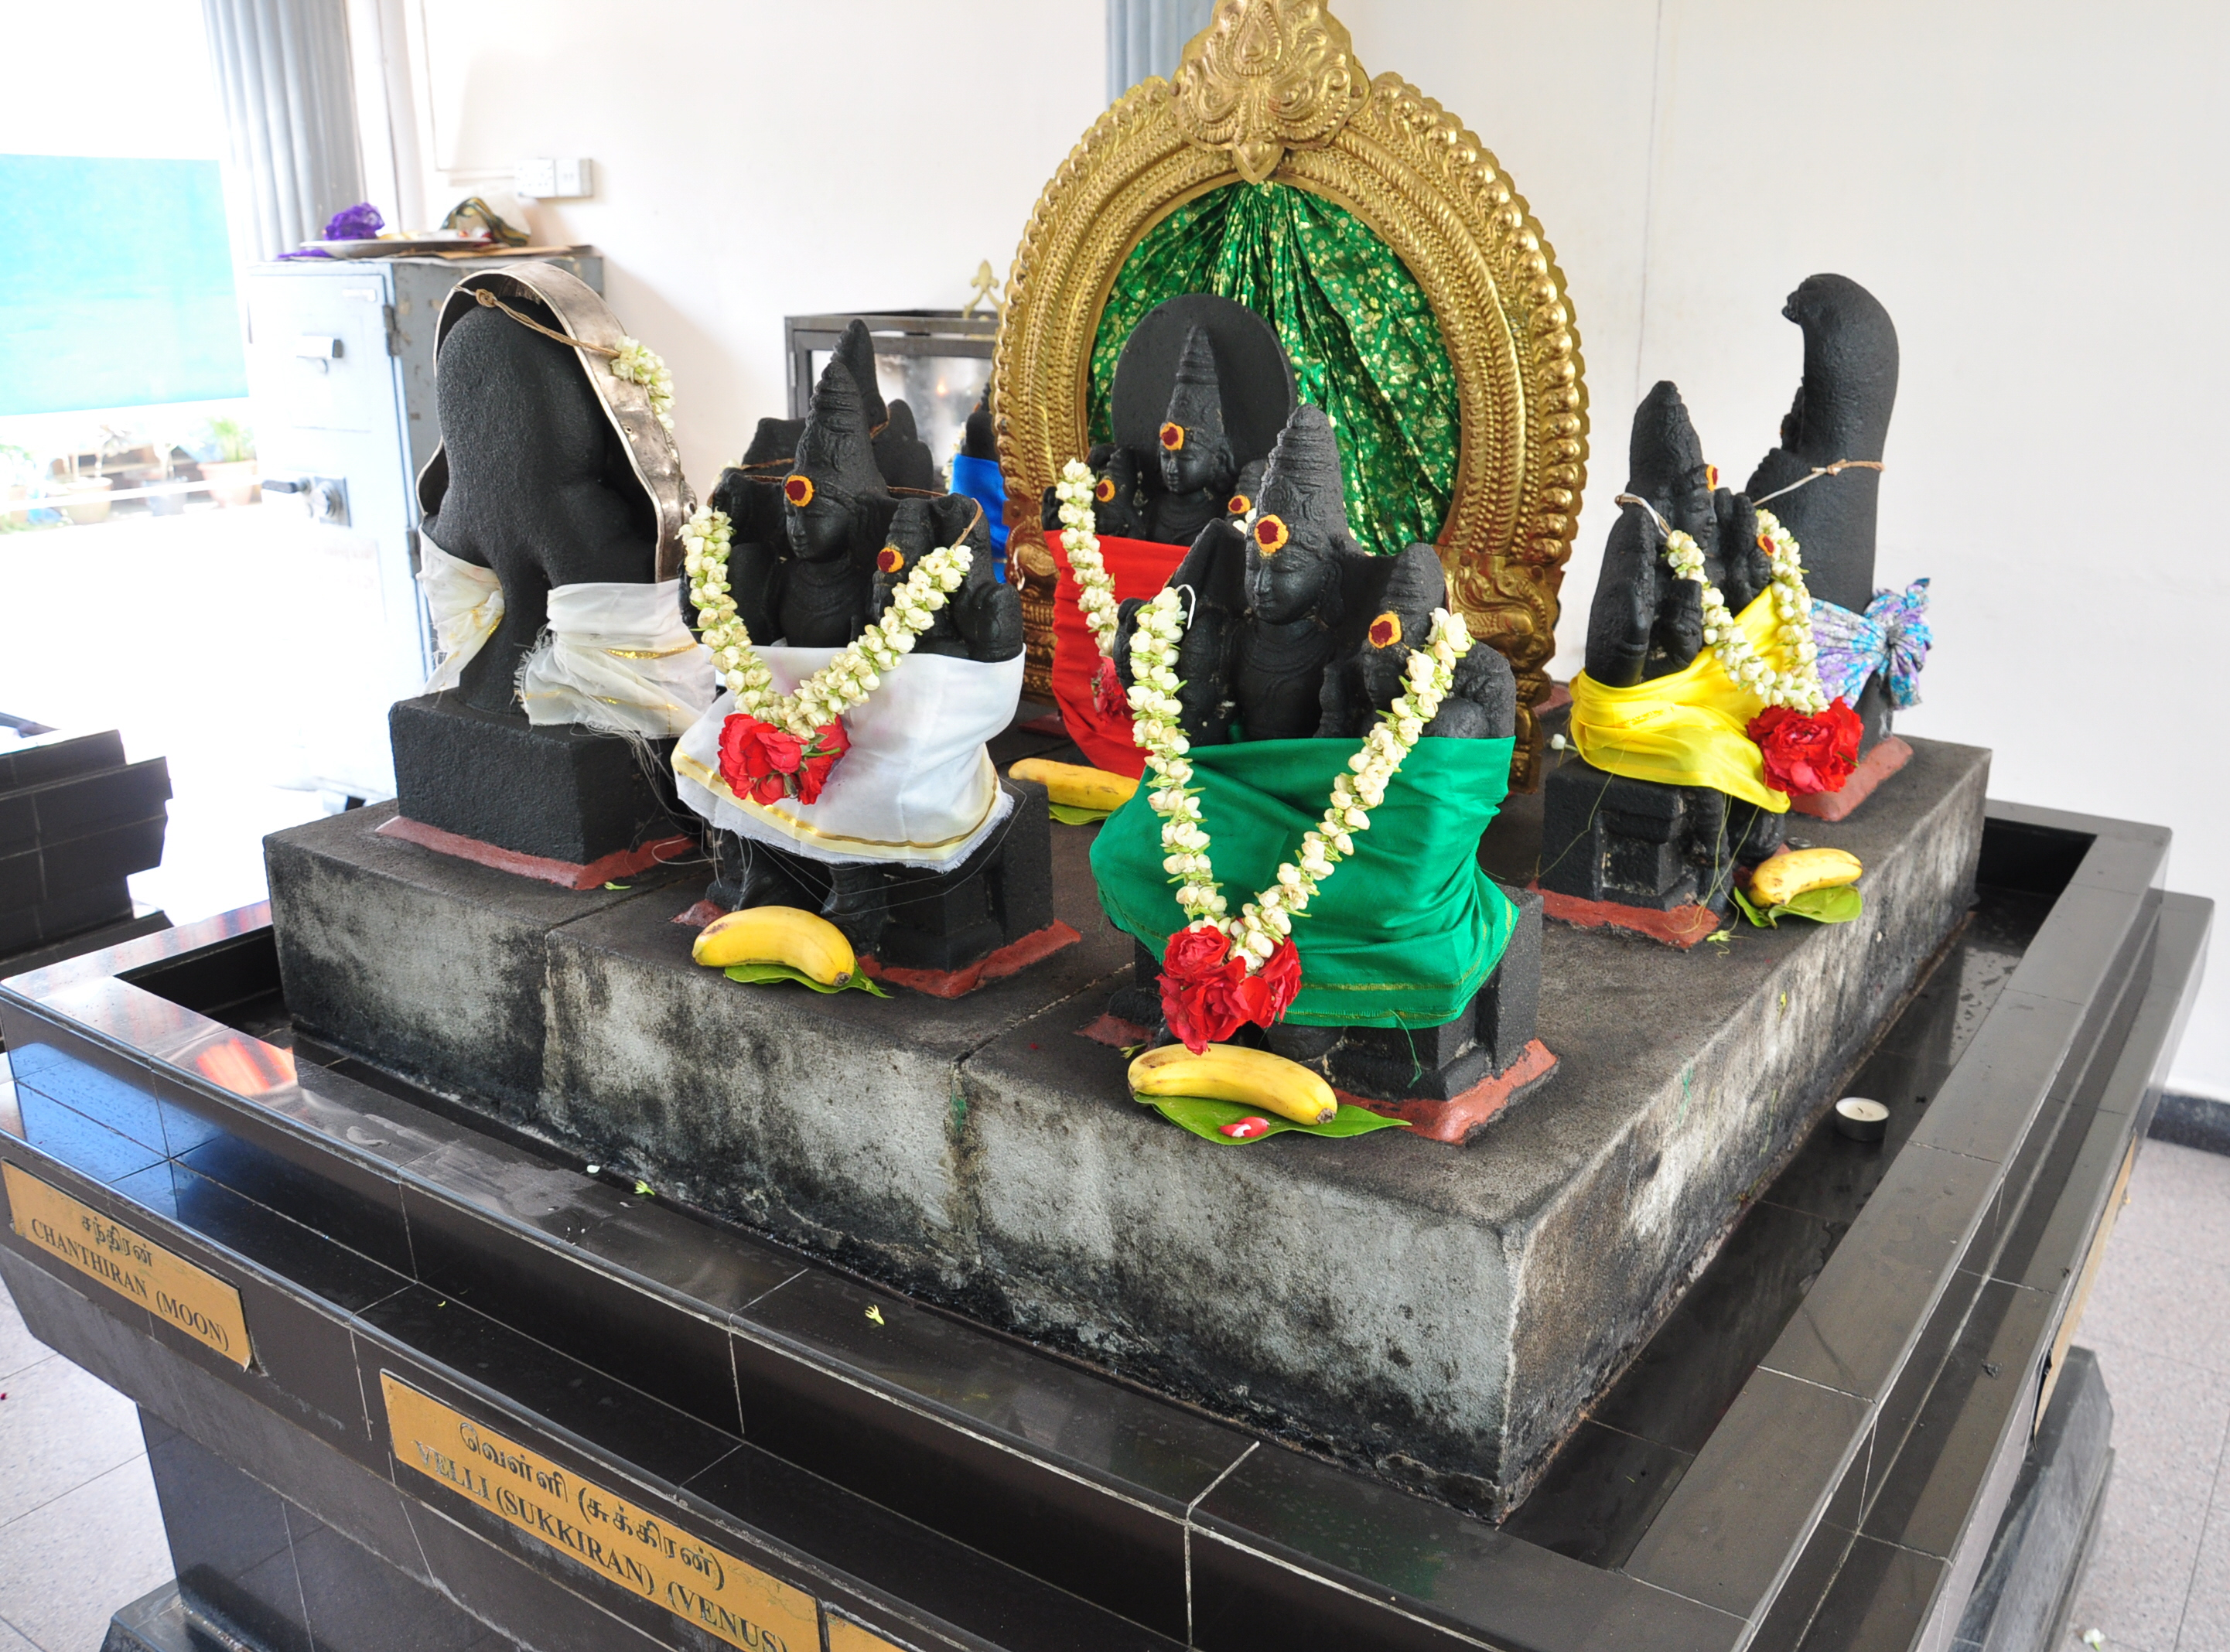 Idols-of-Navagrahas-in-a-temple